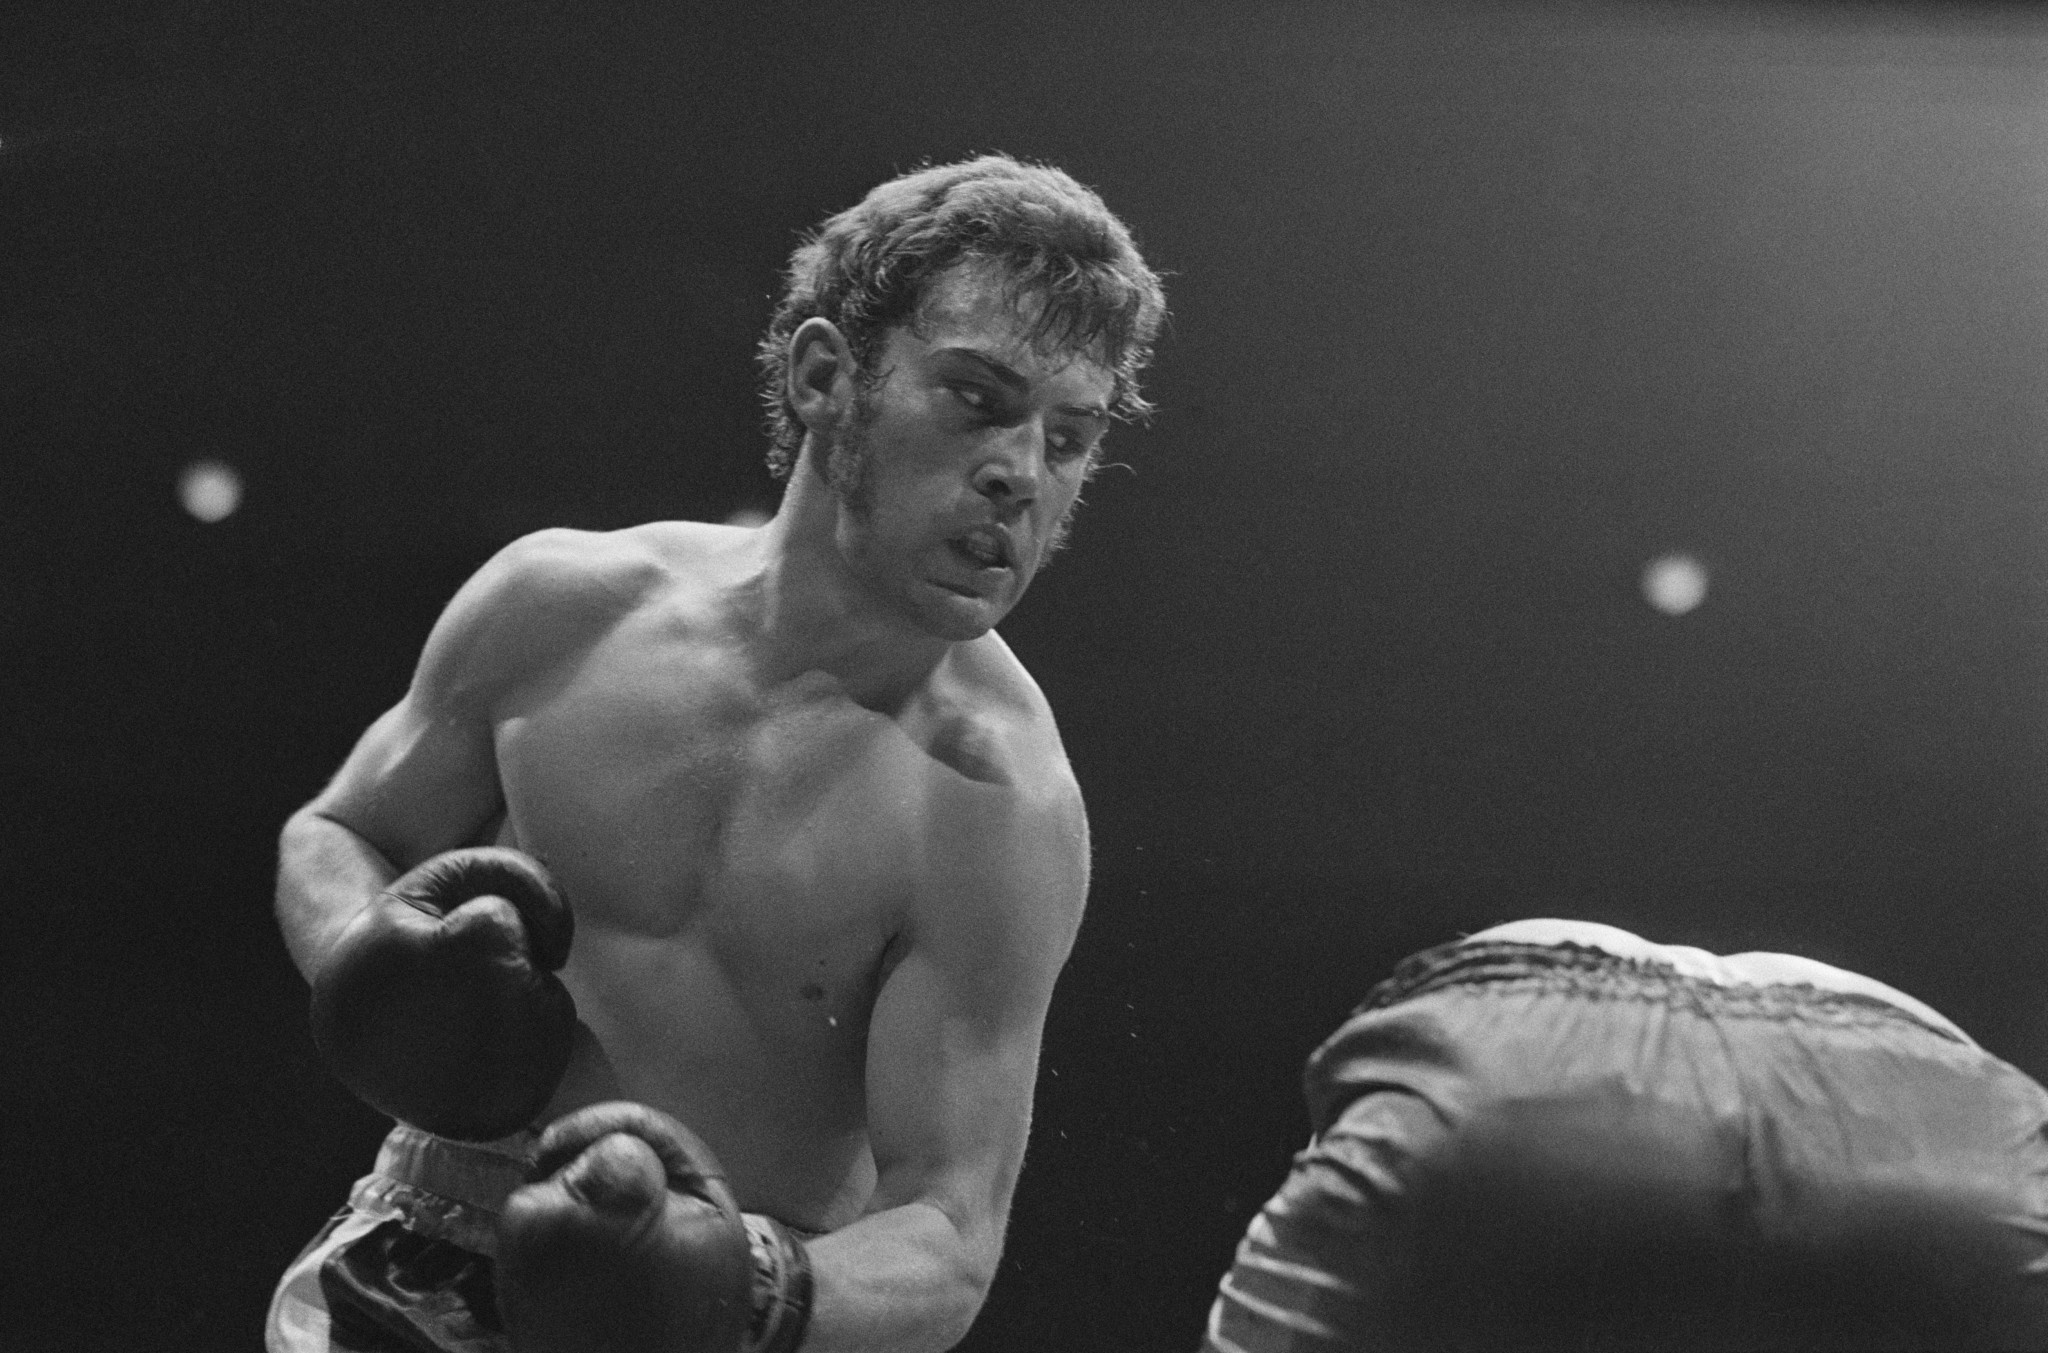 Munich 1972 bronze medallist and former world boxing champion Minter dies aged 69